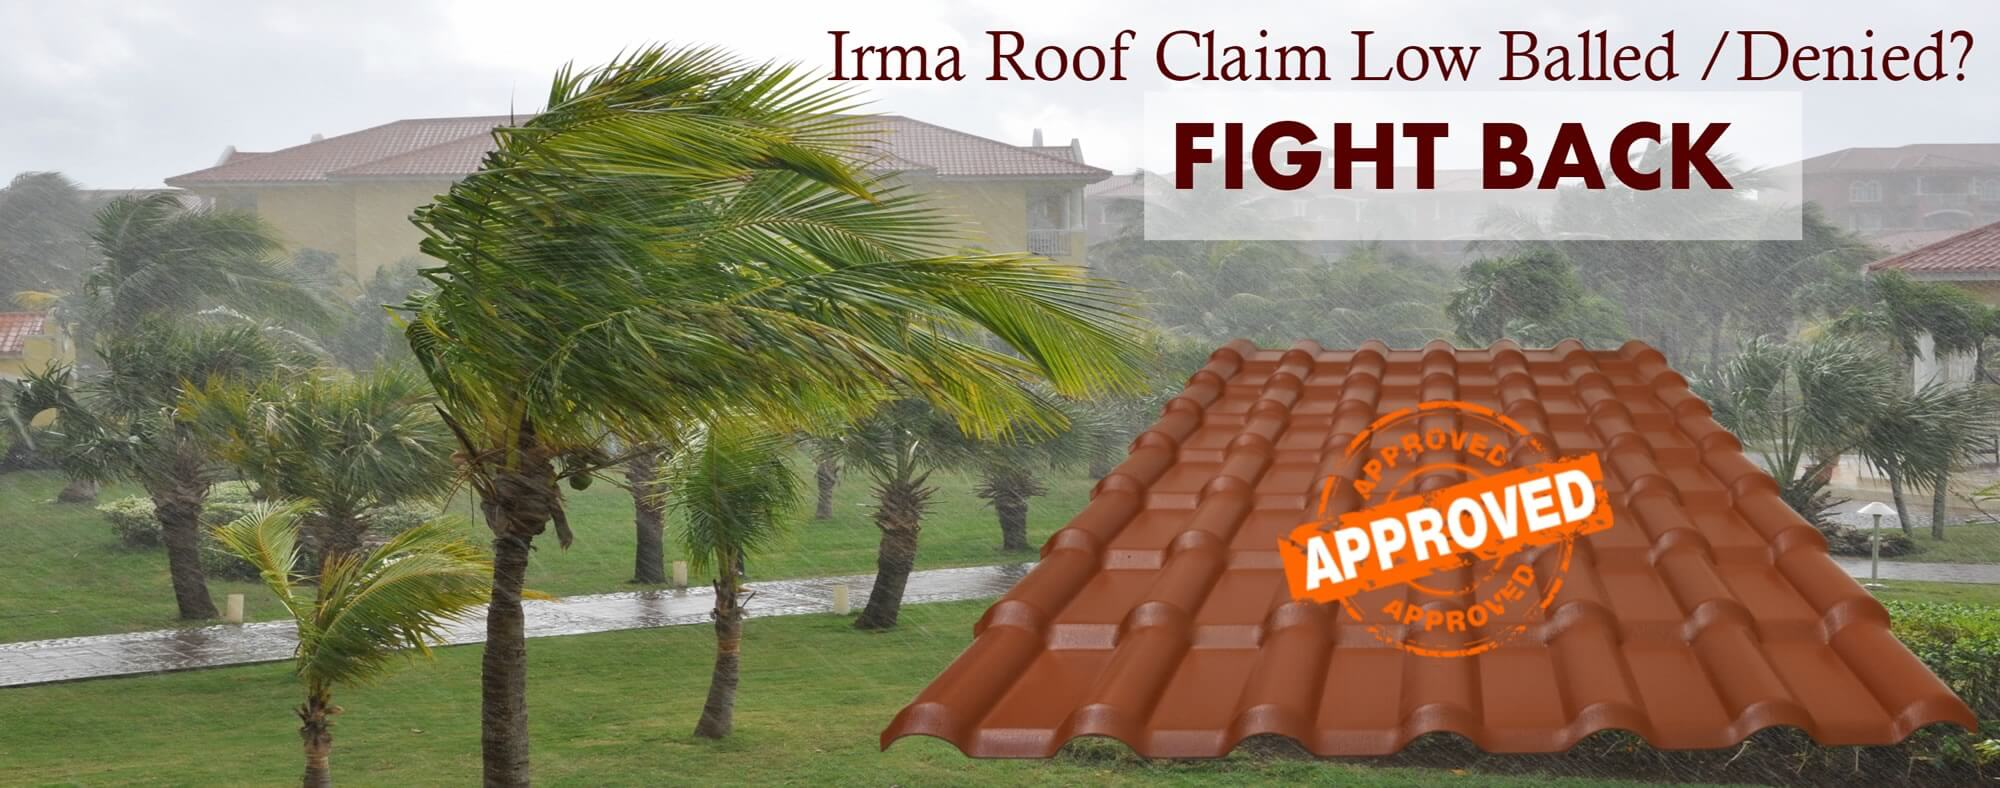 Hurricane Irma Roof Insurance Claim